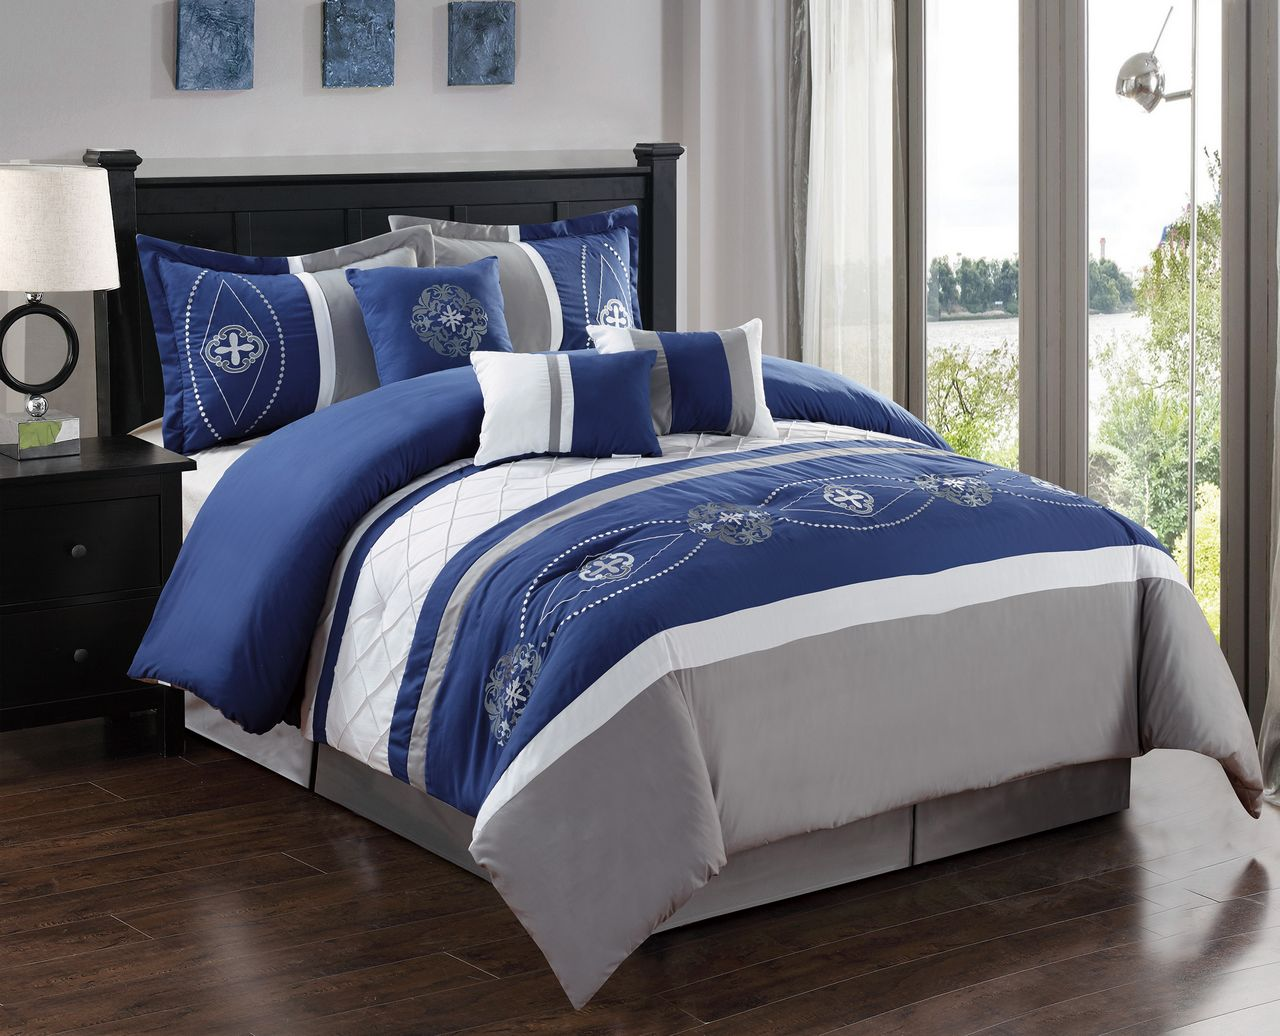 color overstock hills barn bedding the sleeping white comforter bath less for cat set sets gray king size